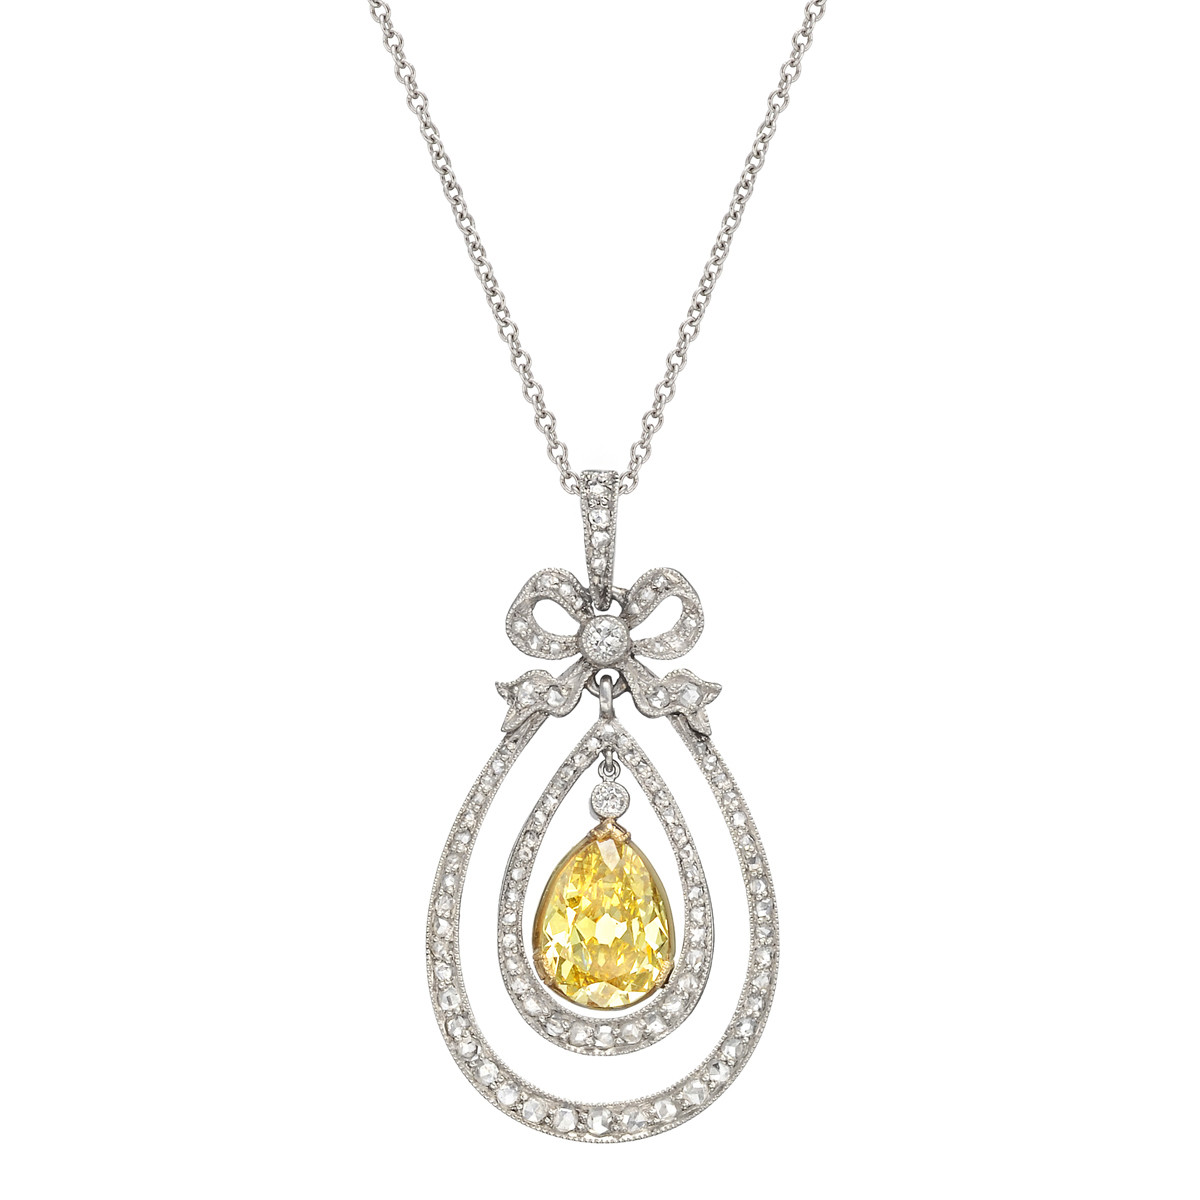 Antique Yellow & White Diamond Pendant